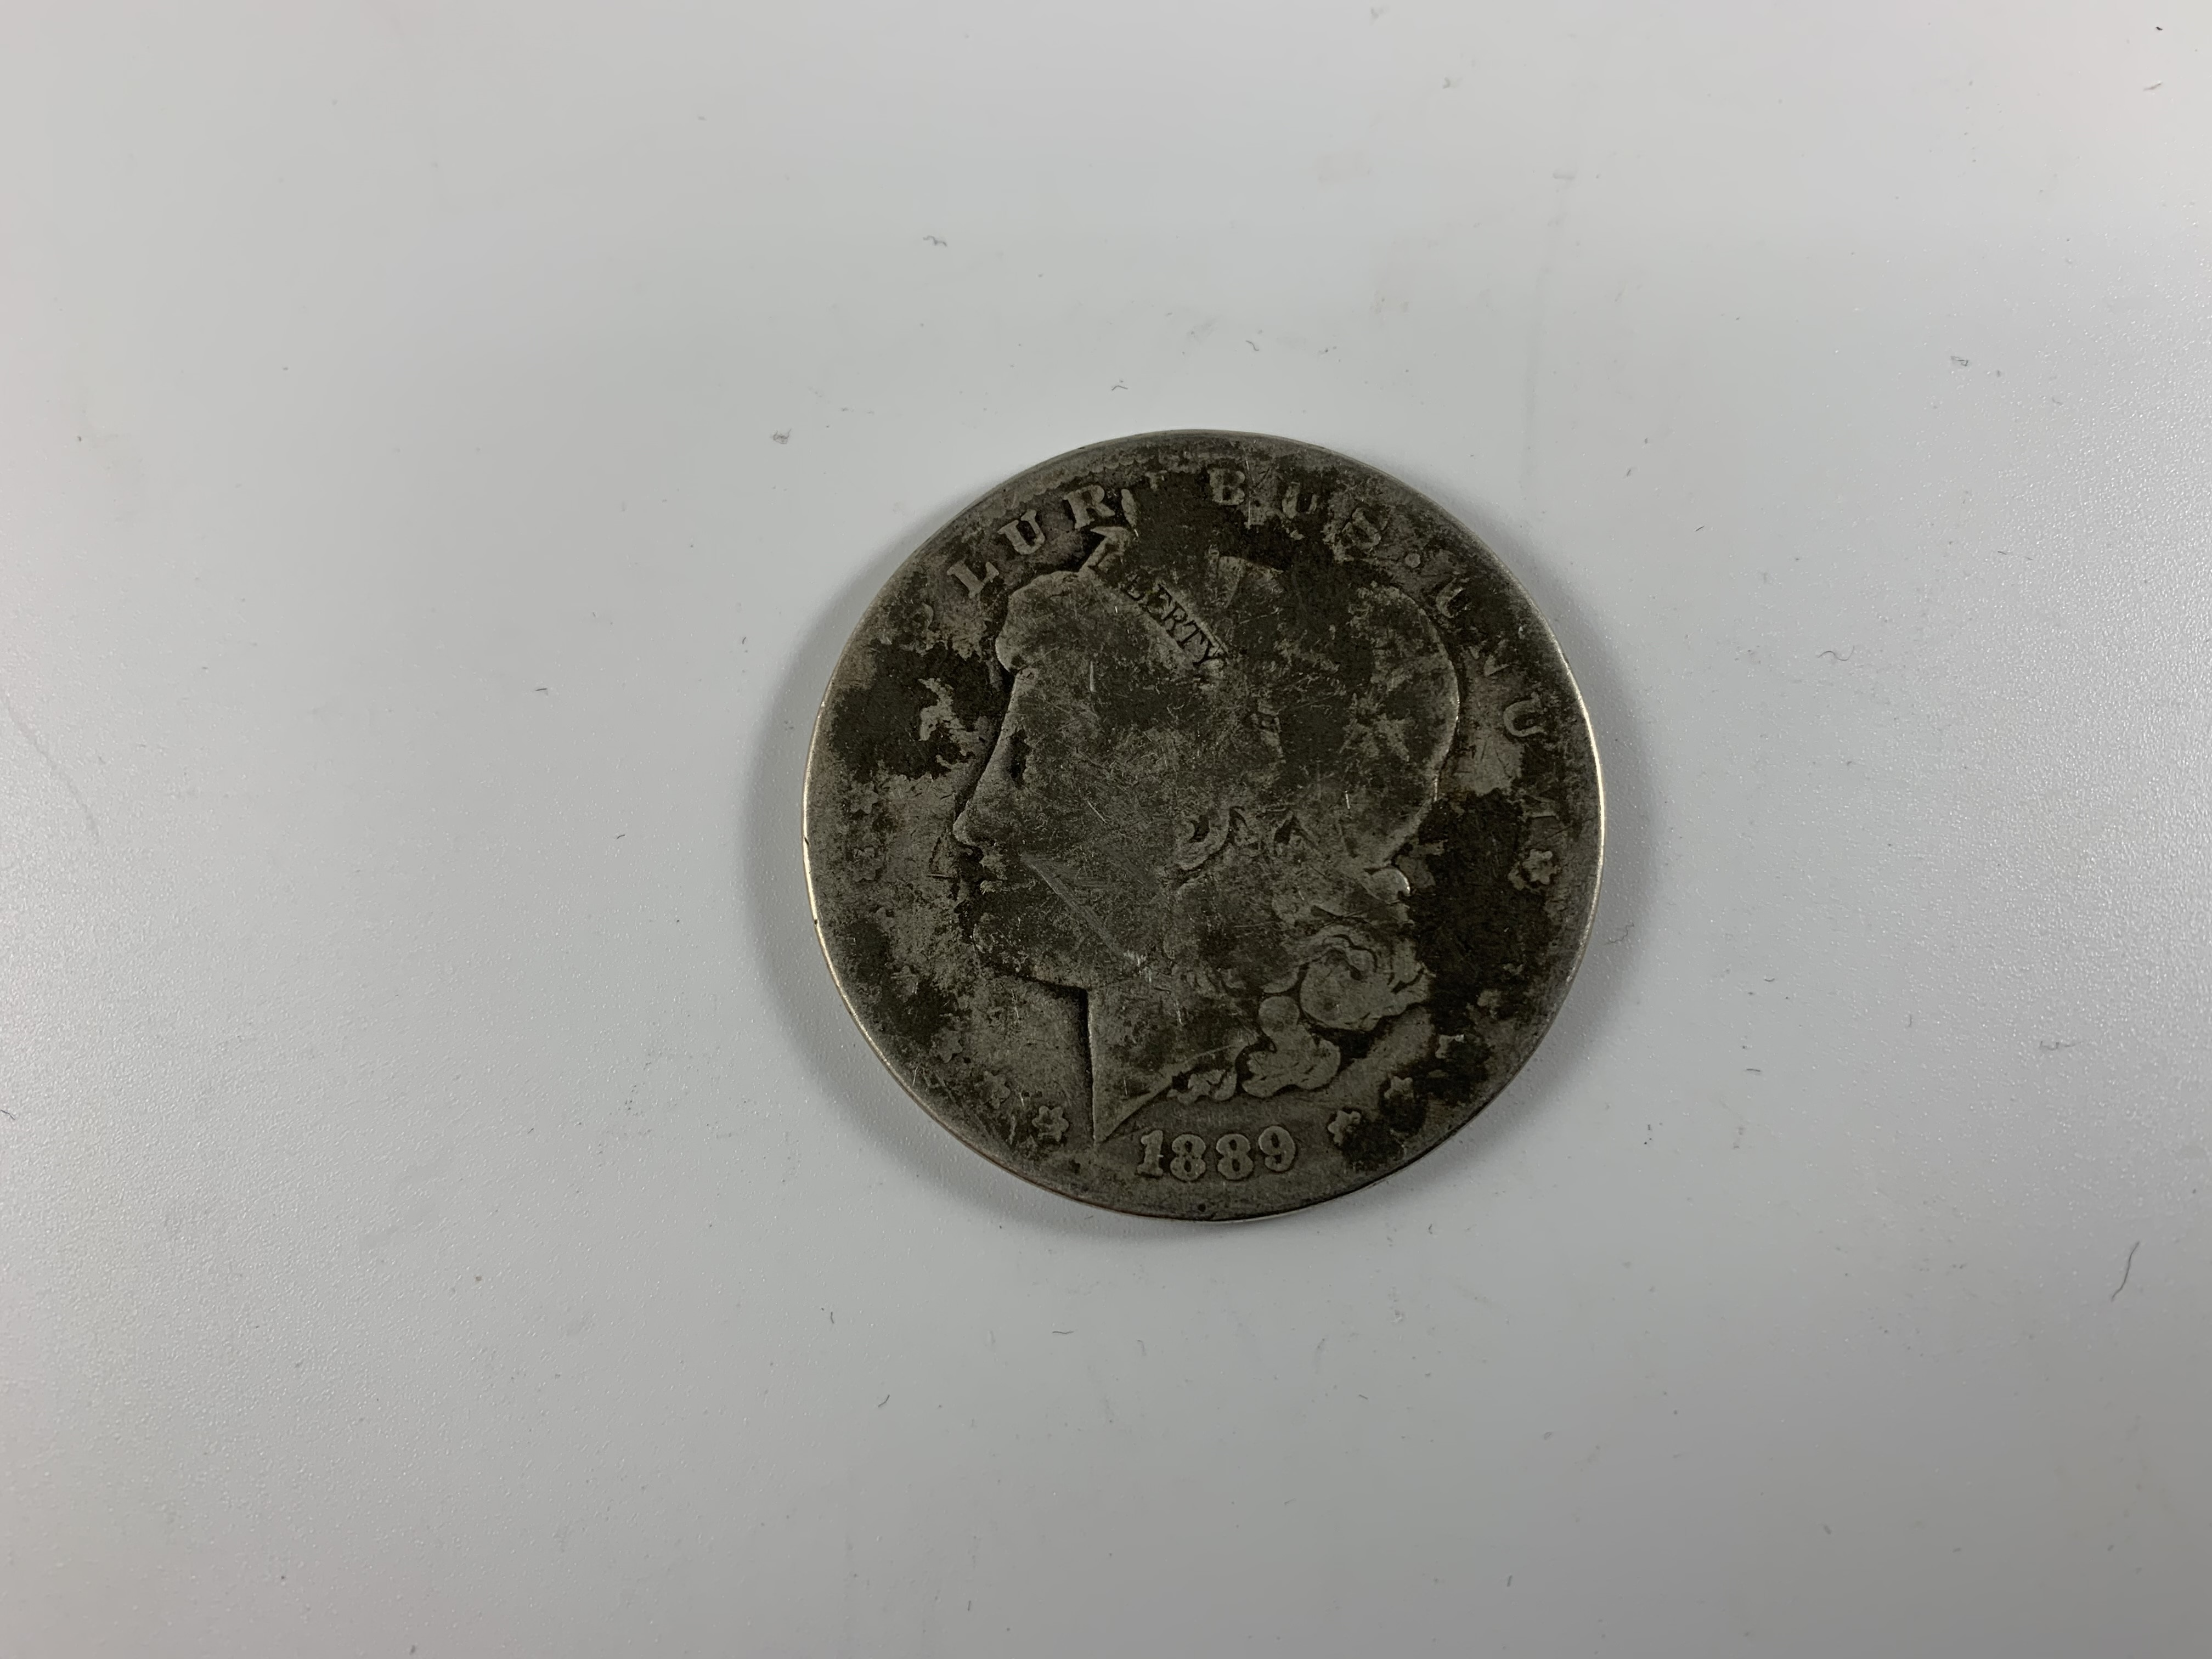 1889-O G (good) Morgan Silver Dollar